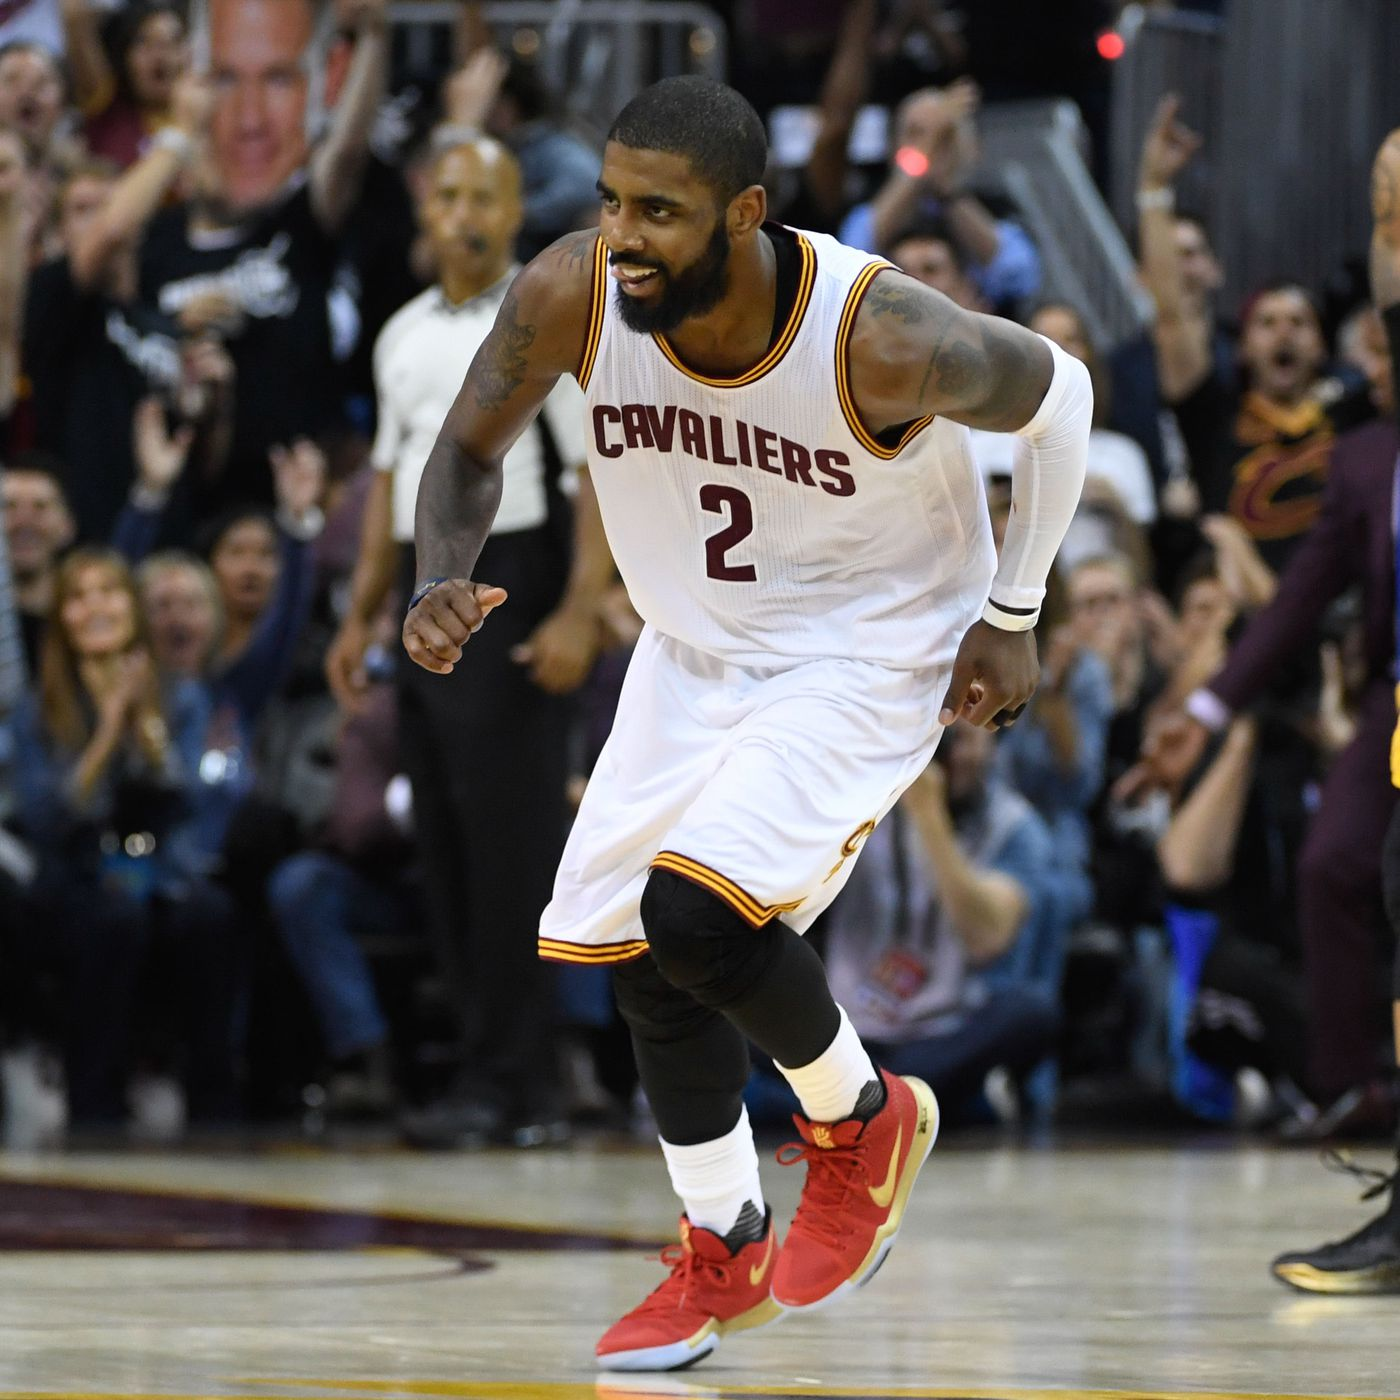 523065a7a Should the Sixers entertain trading for Cavaliers guard Kyrie Irving ...